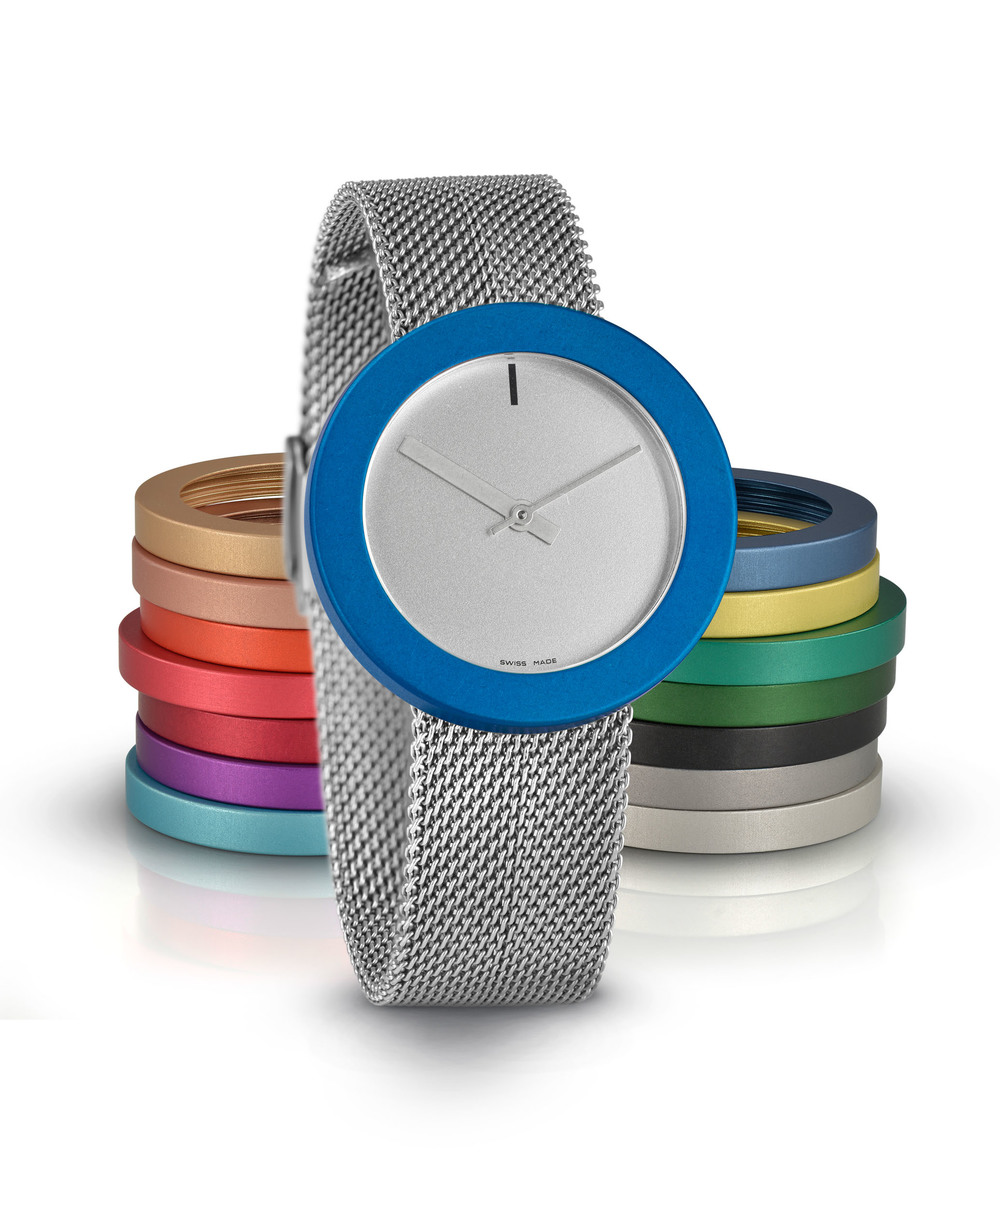 Junod-Vignelli MV34 silver_dial blue_ring milanais_band-small.JPG